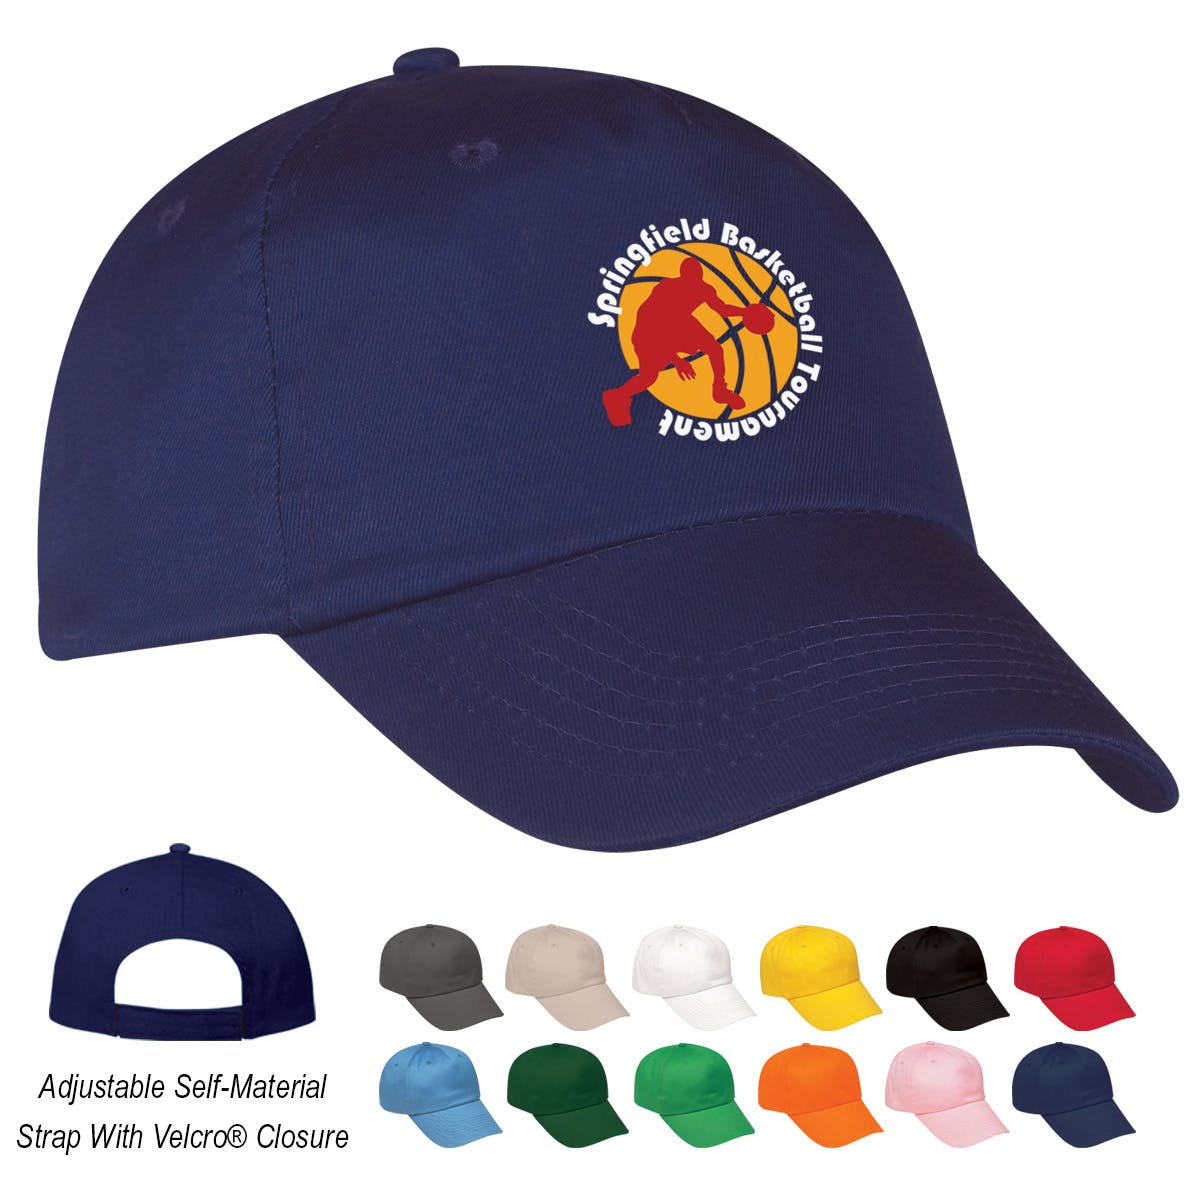 Price Buster Cap (Item # VFGIR-BEKJM) Promotional cap sold by InkEasy